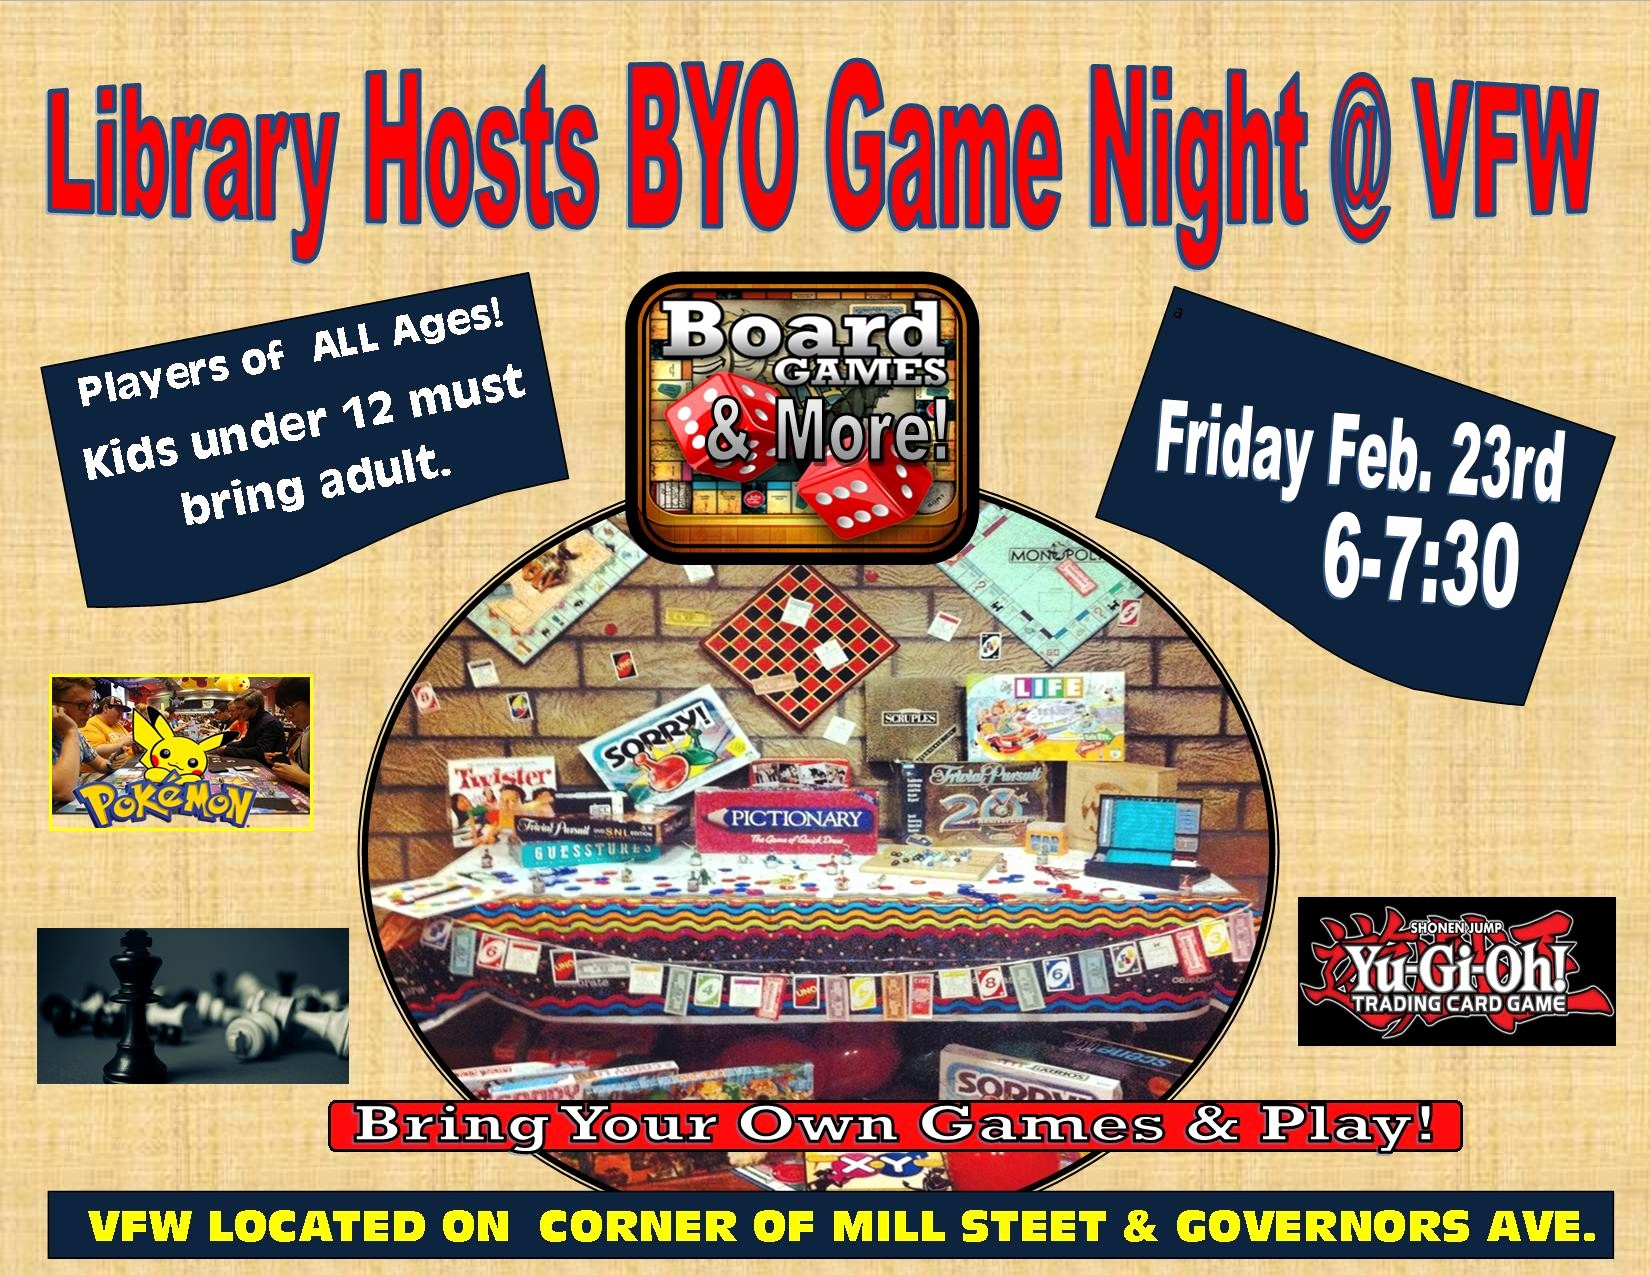 Board Game Night Flyer Template Inspirational byo Game Night